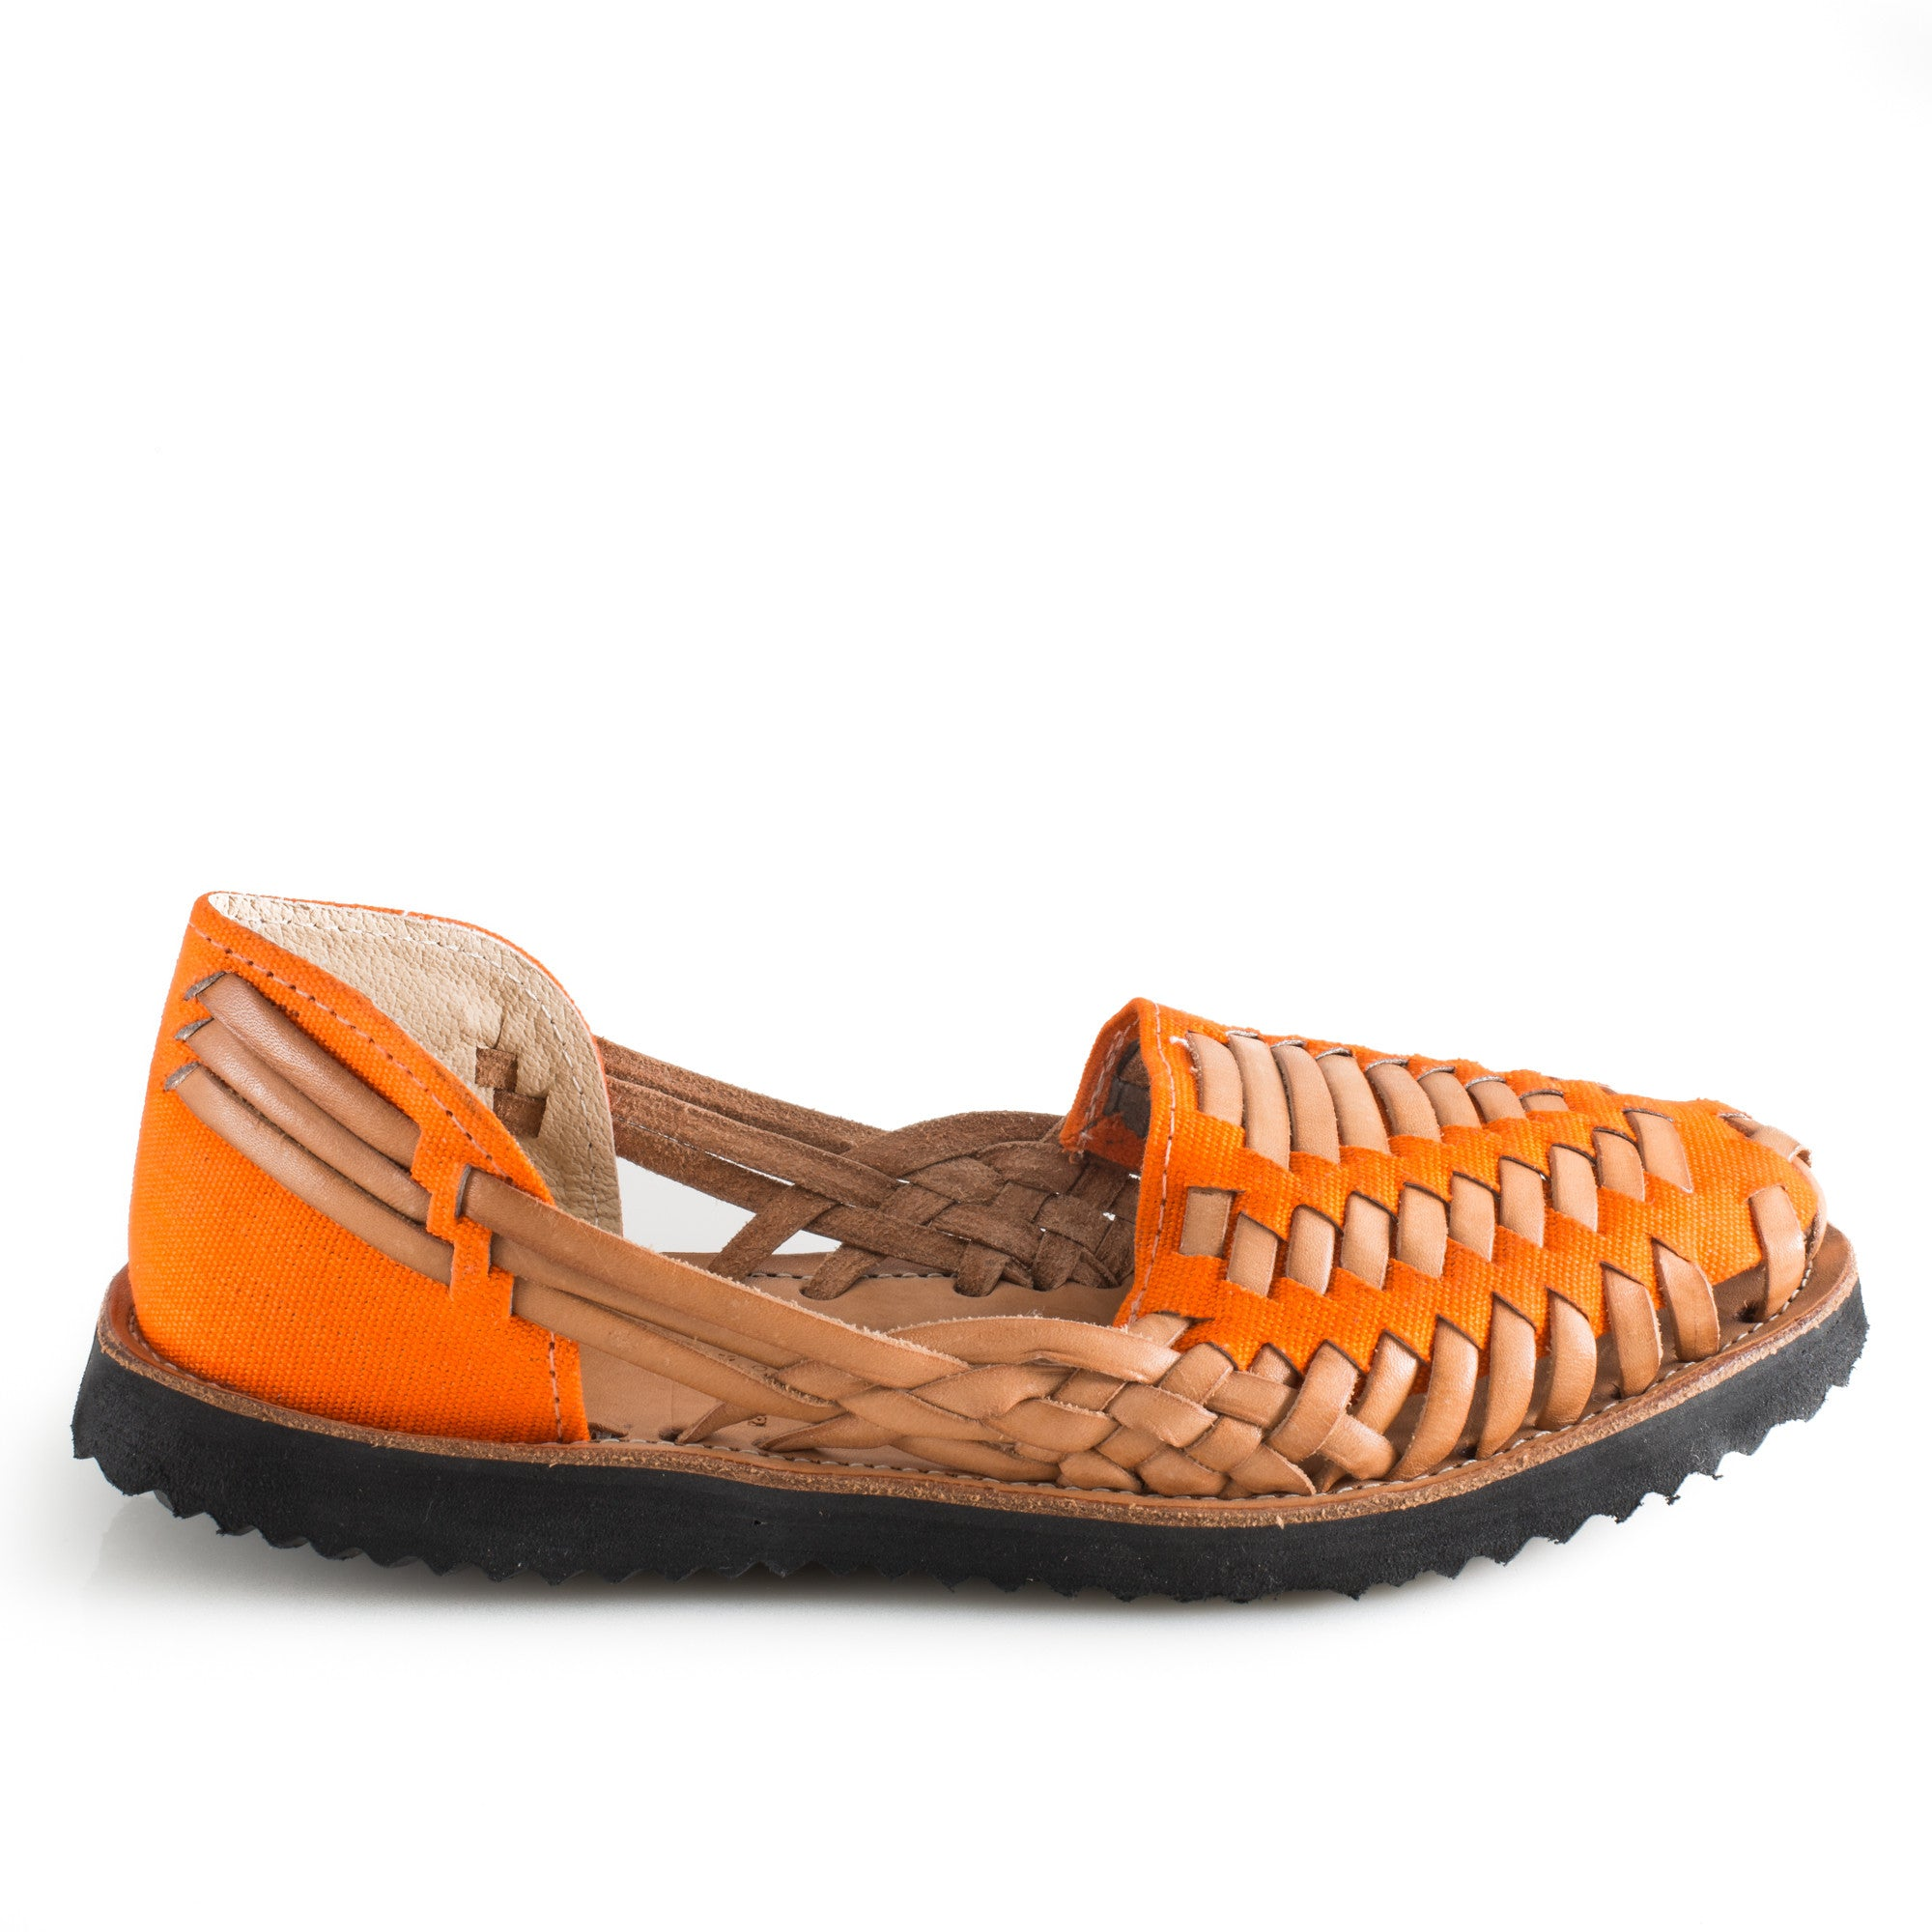 Women's Orange Woven Leather Huarache Sandals - Ix Style - Water For Children